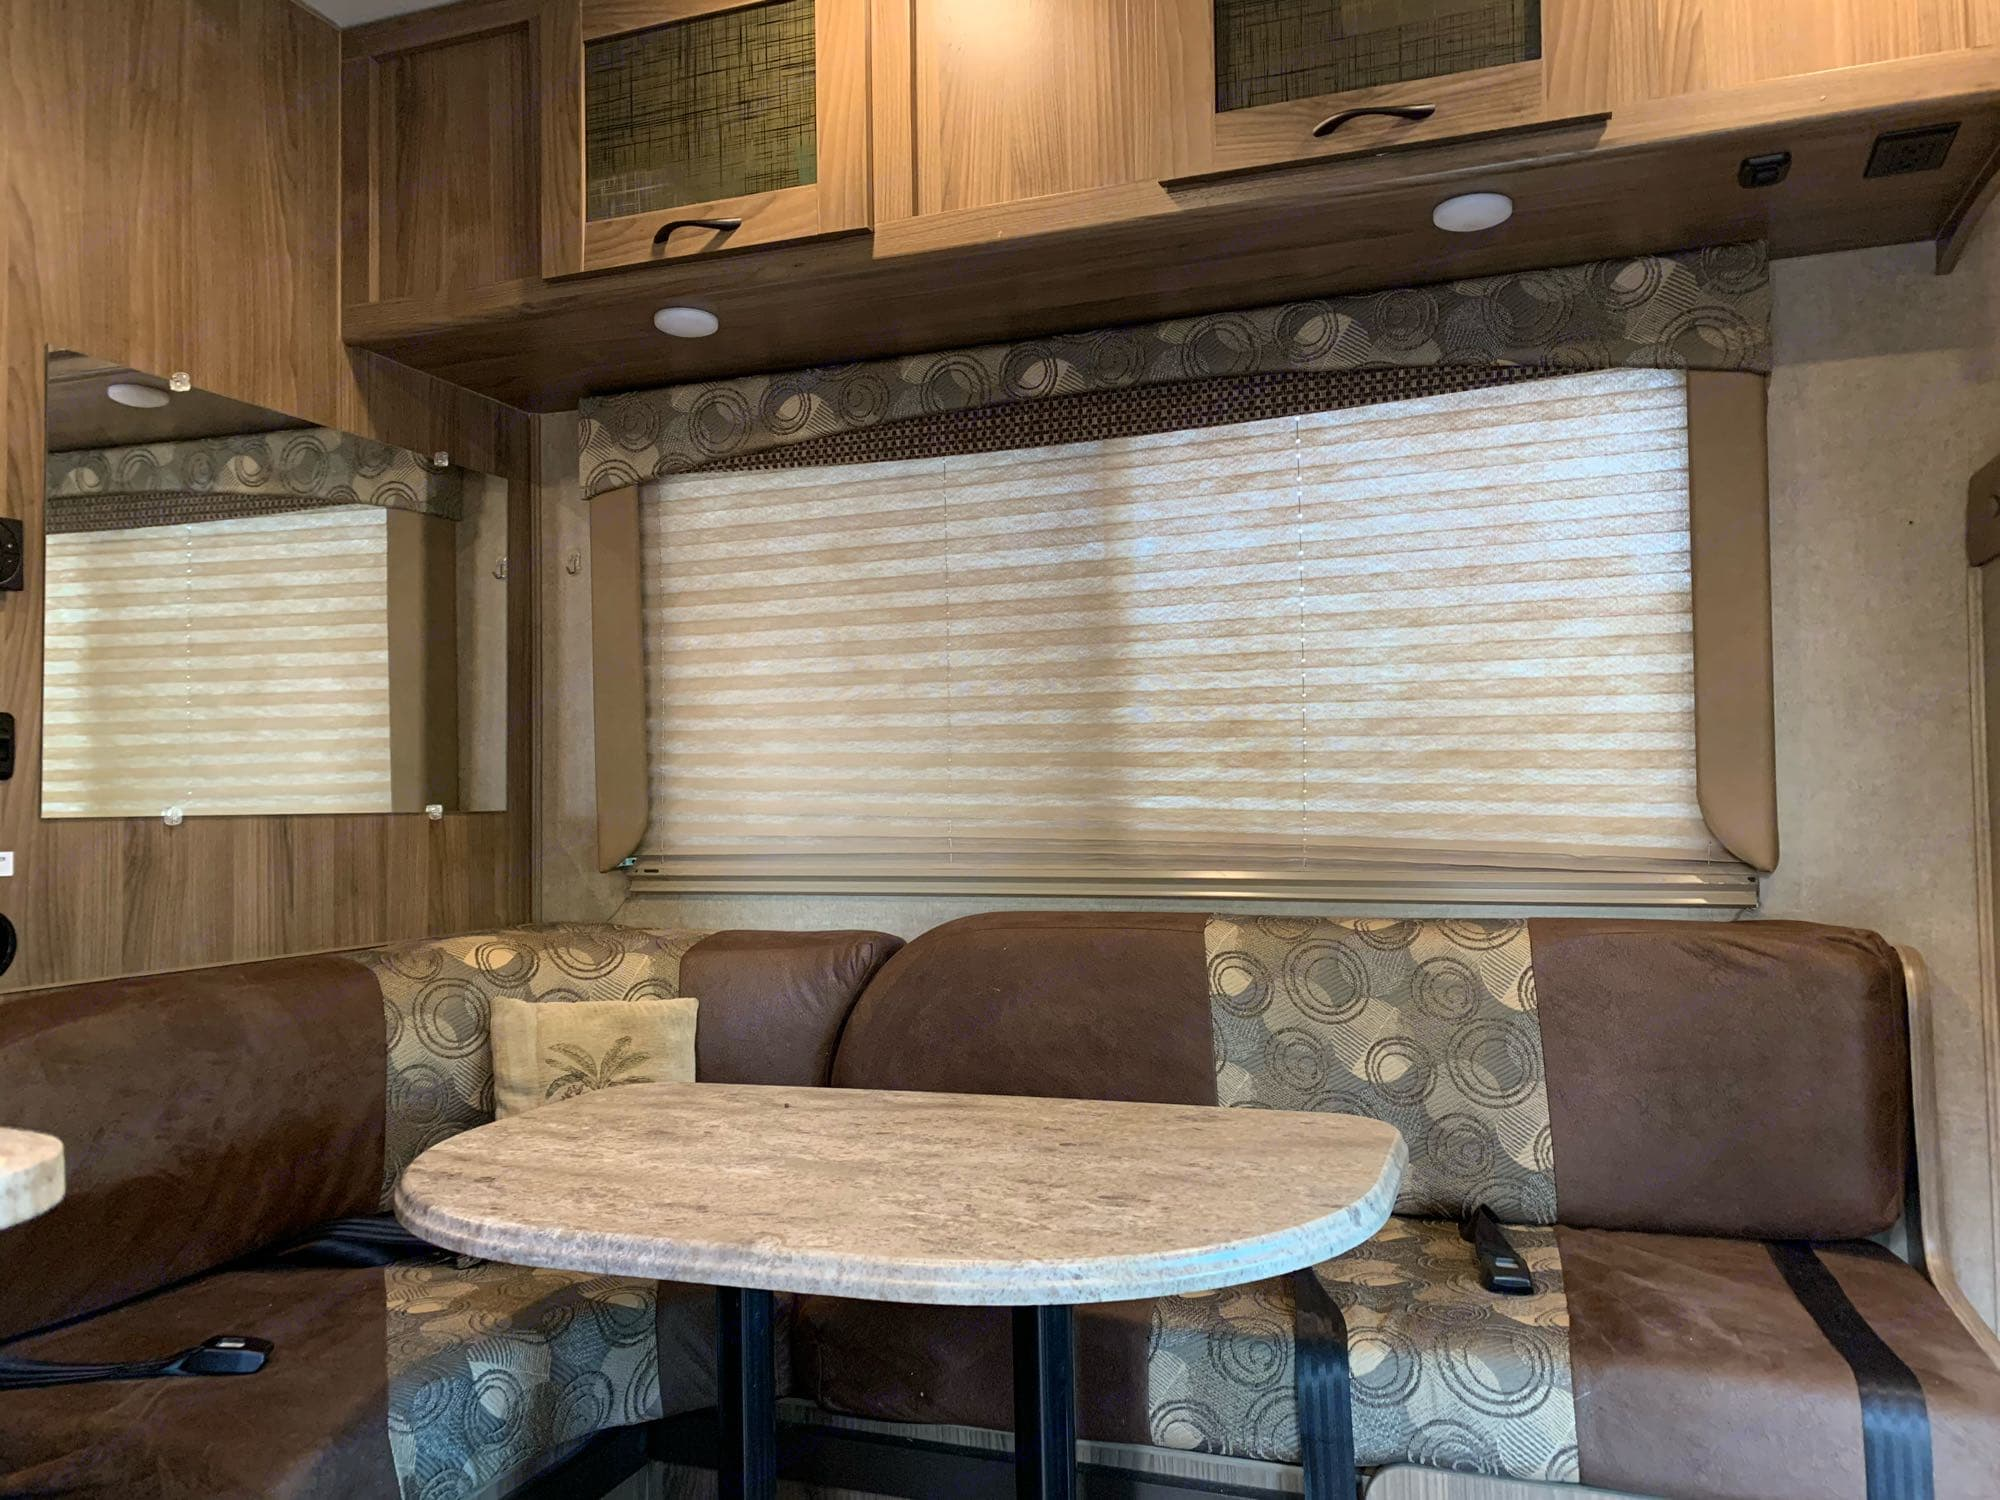 dining table with slid-out extra seat converts to small bed. Coachmen Freelander 2016